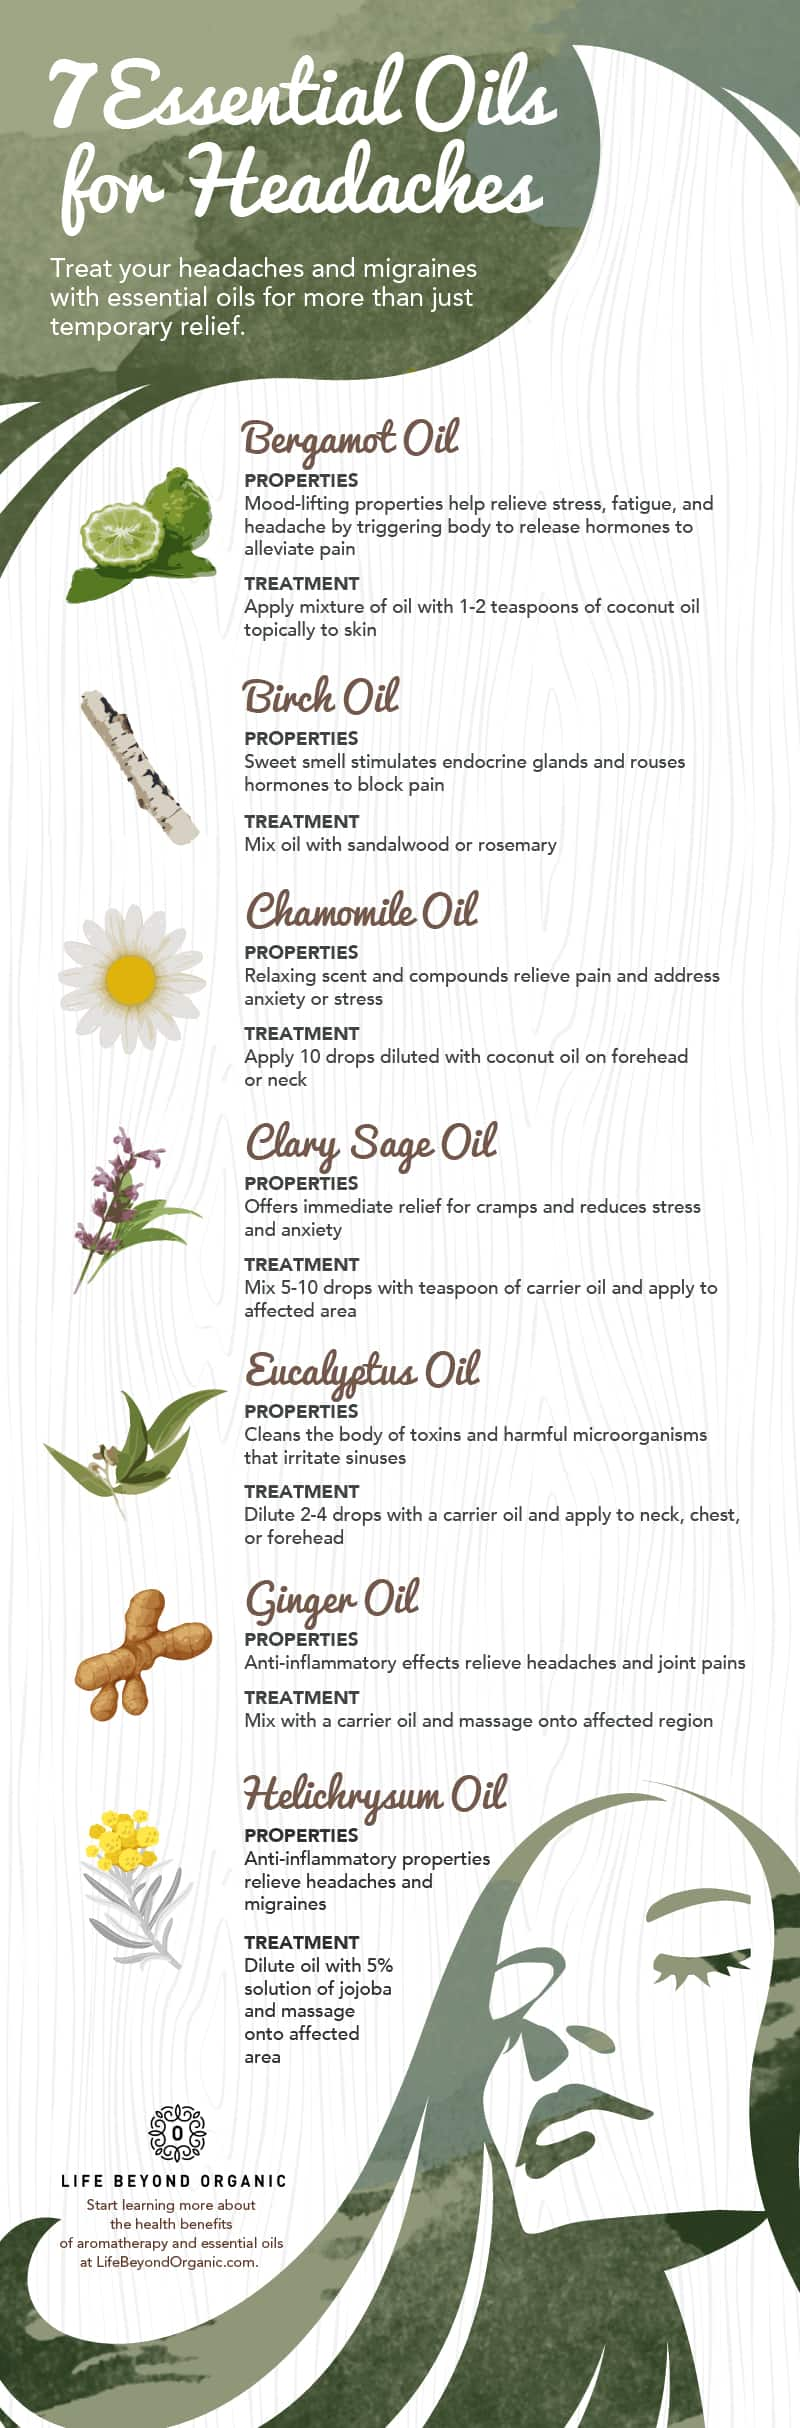 The Best Essential Oils For Headaches | 7 Essential Oils for Headaches